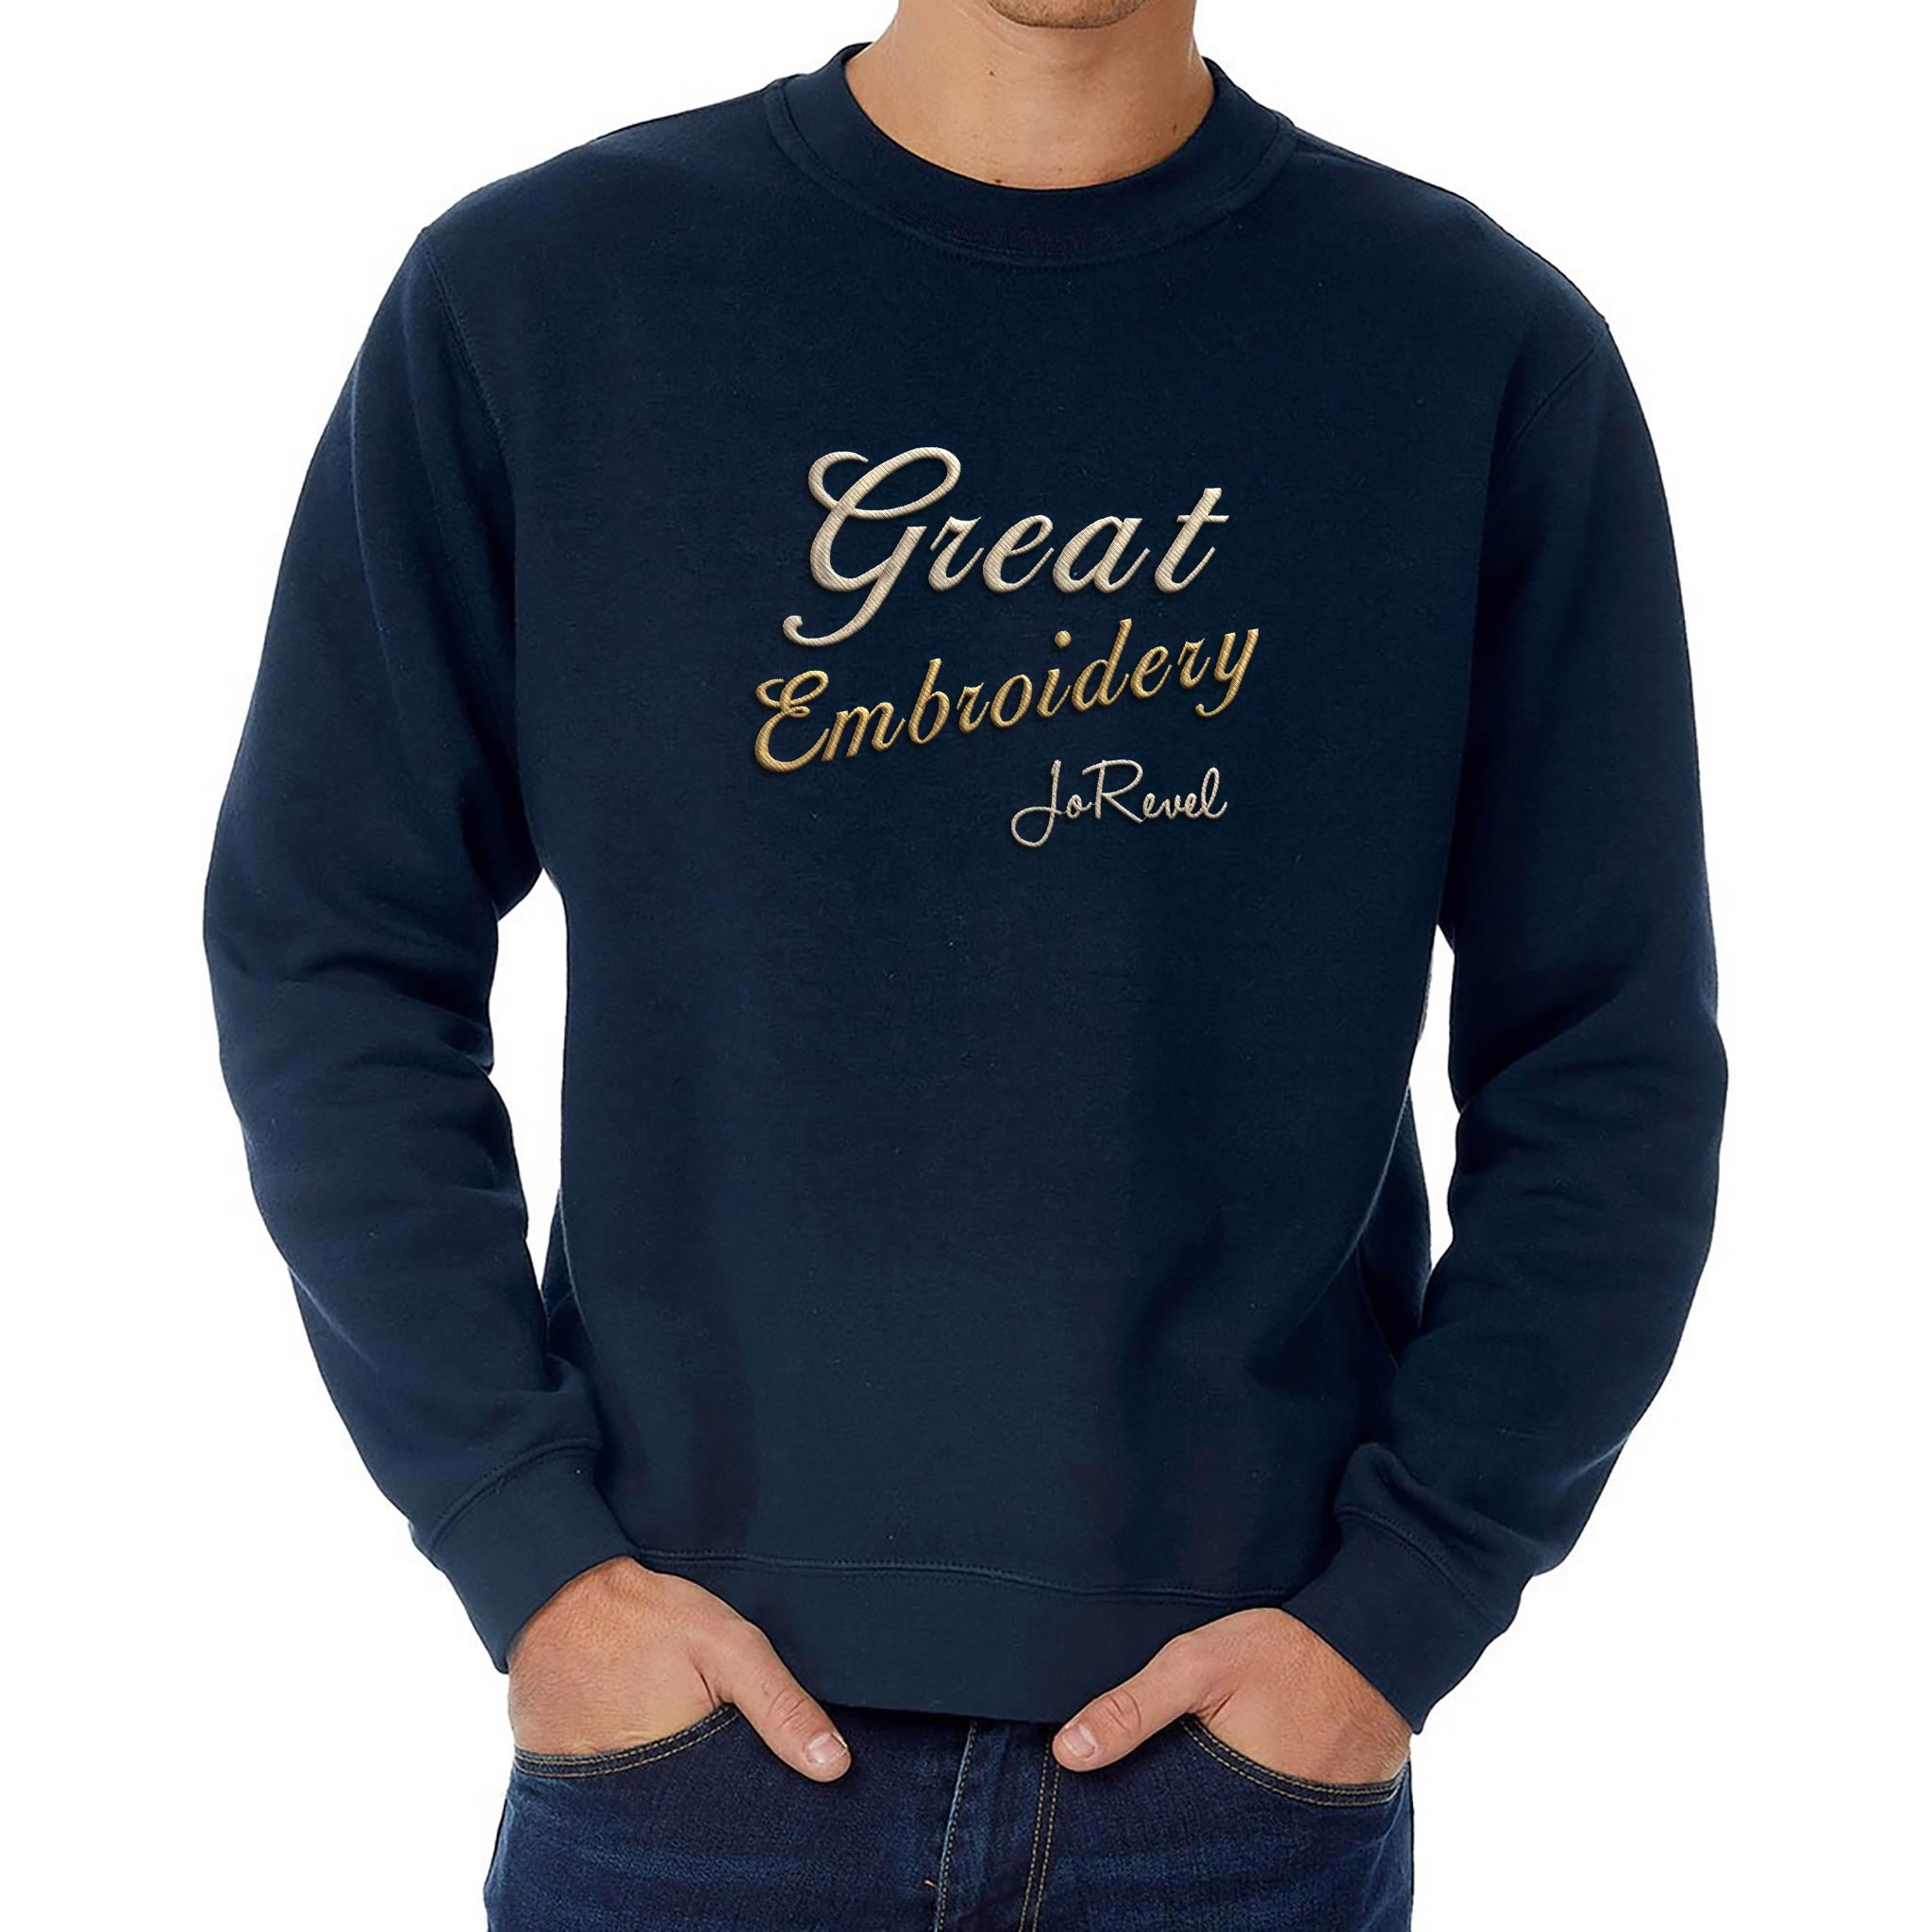 Store Embroidery JoRevel embrodert Sweatskjorte